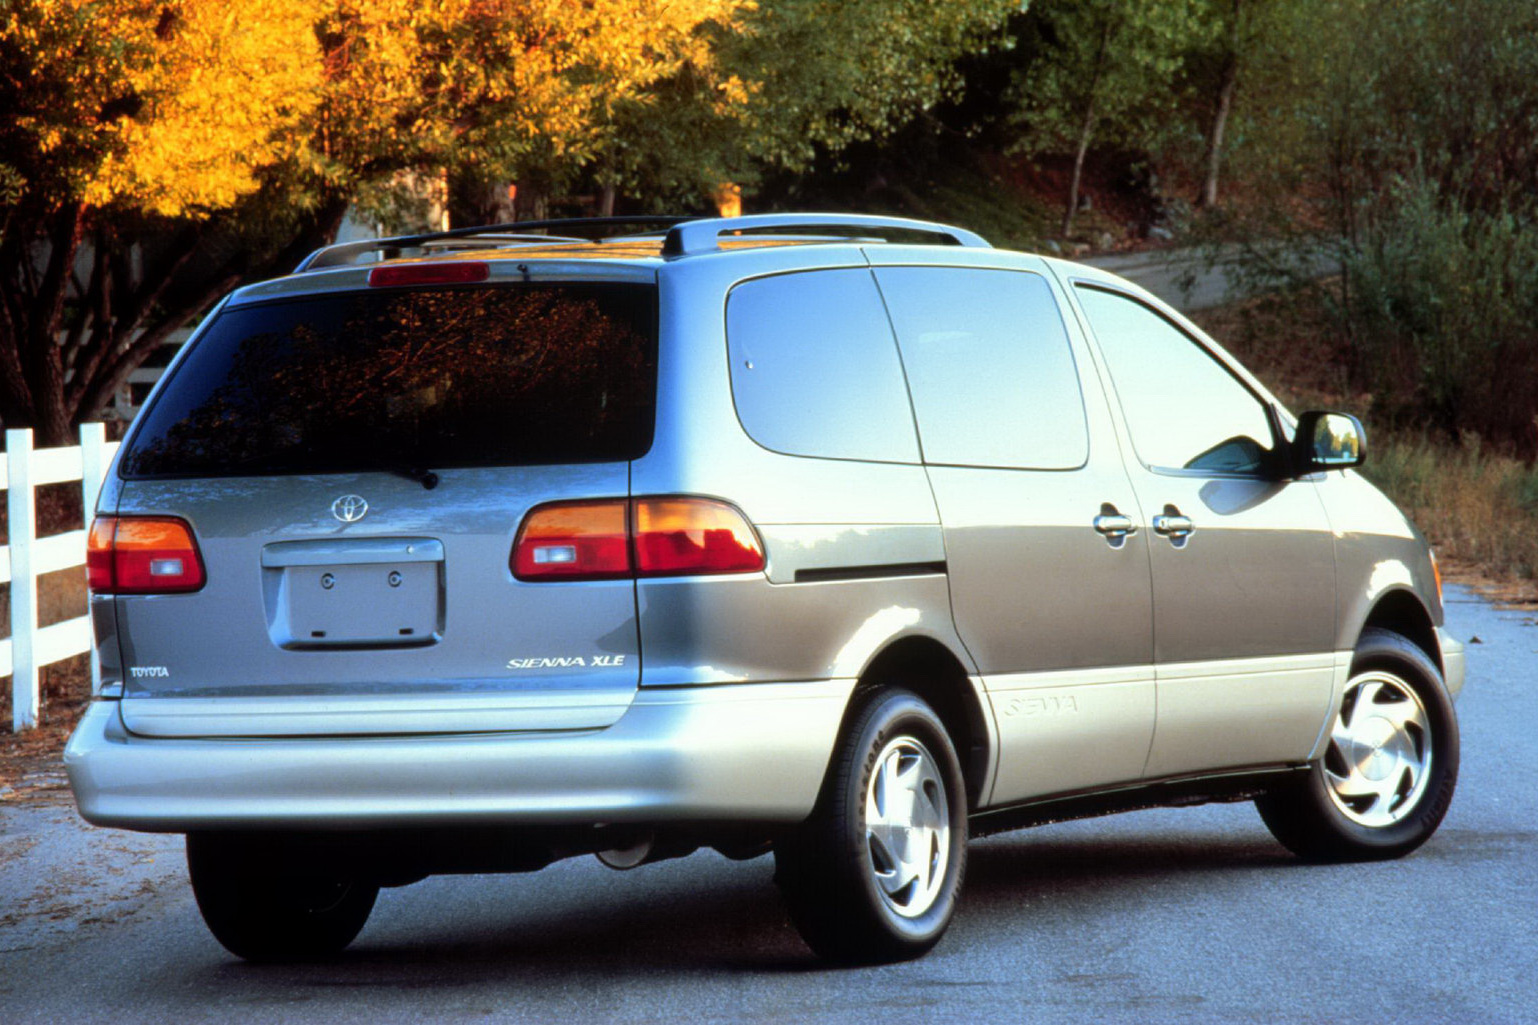 Toyota Announces Voluntary Safety Recall on 1998-2010 Sienna Minivans